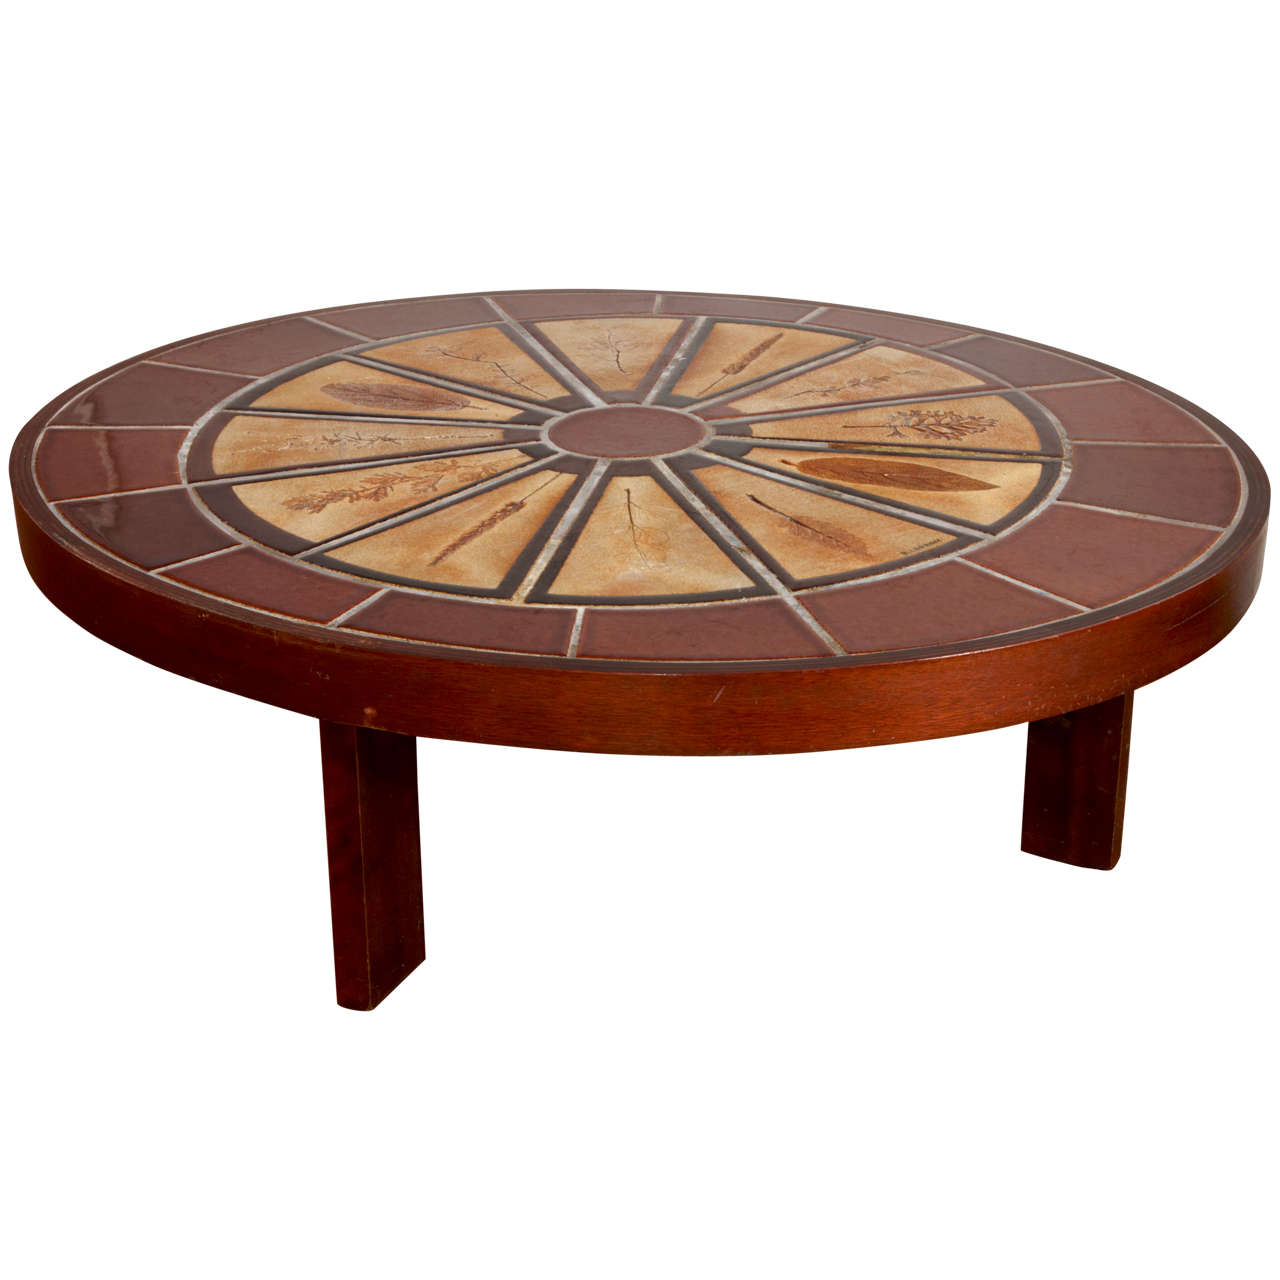 Roger Capron 1970 Tile Coffee Table Garrigue Collection Vallauris